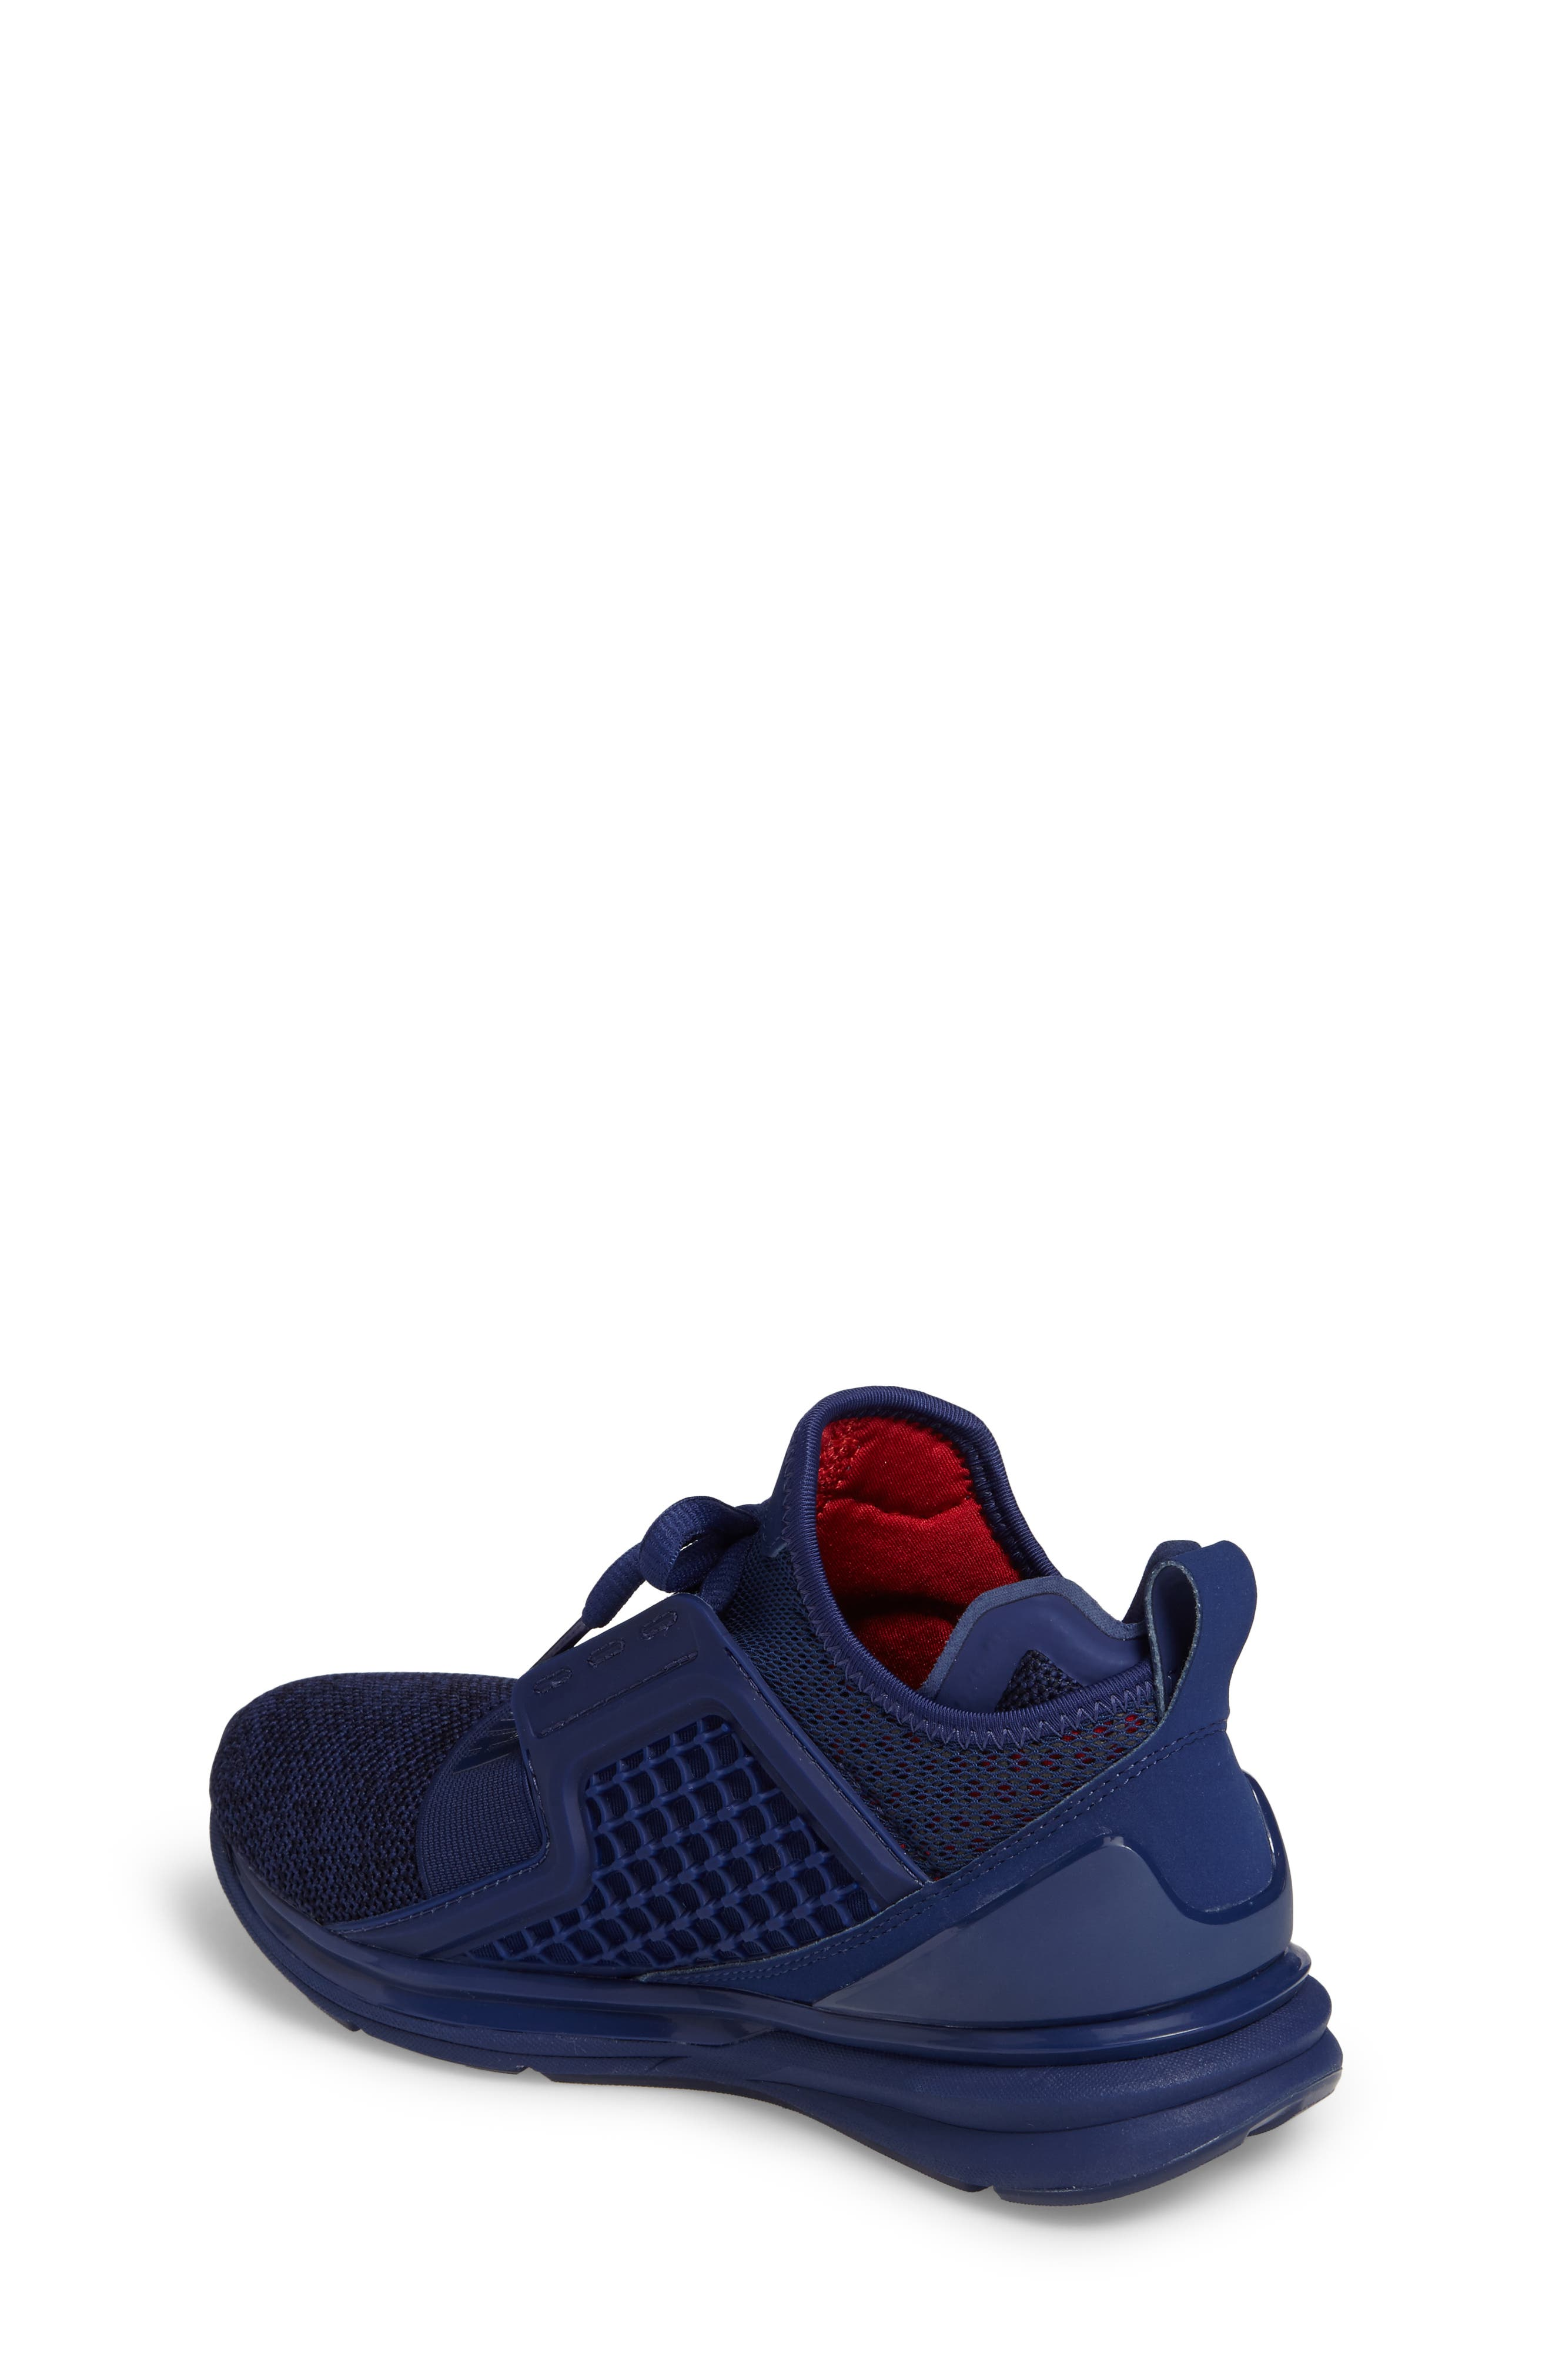 Ignite Limitless Sneaker,                             Alternate thumbnail 2, color,                             Blue